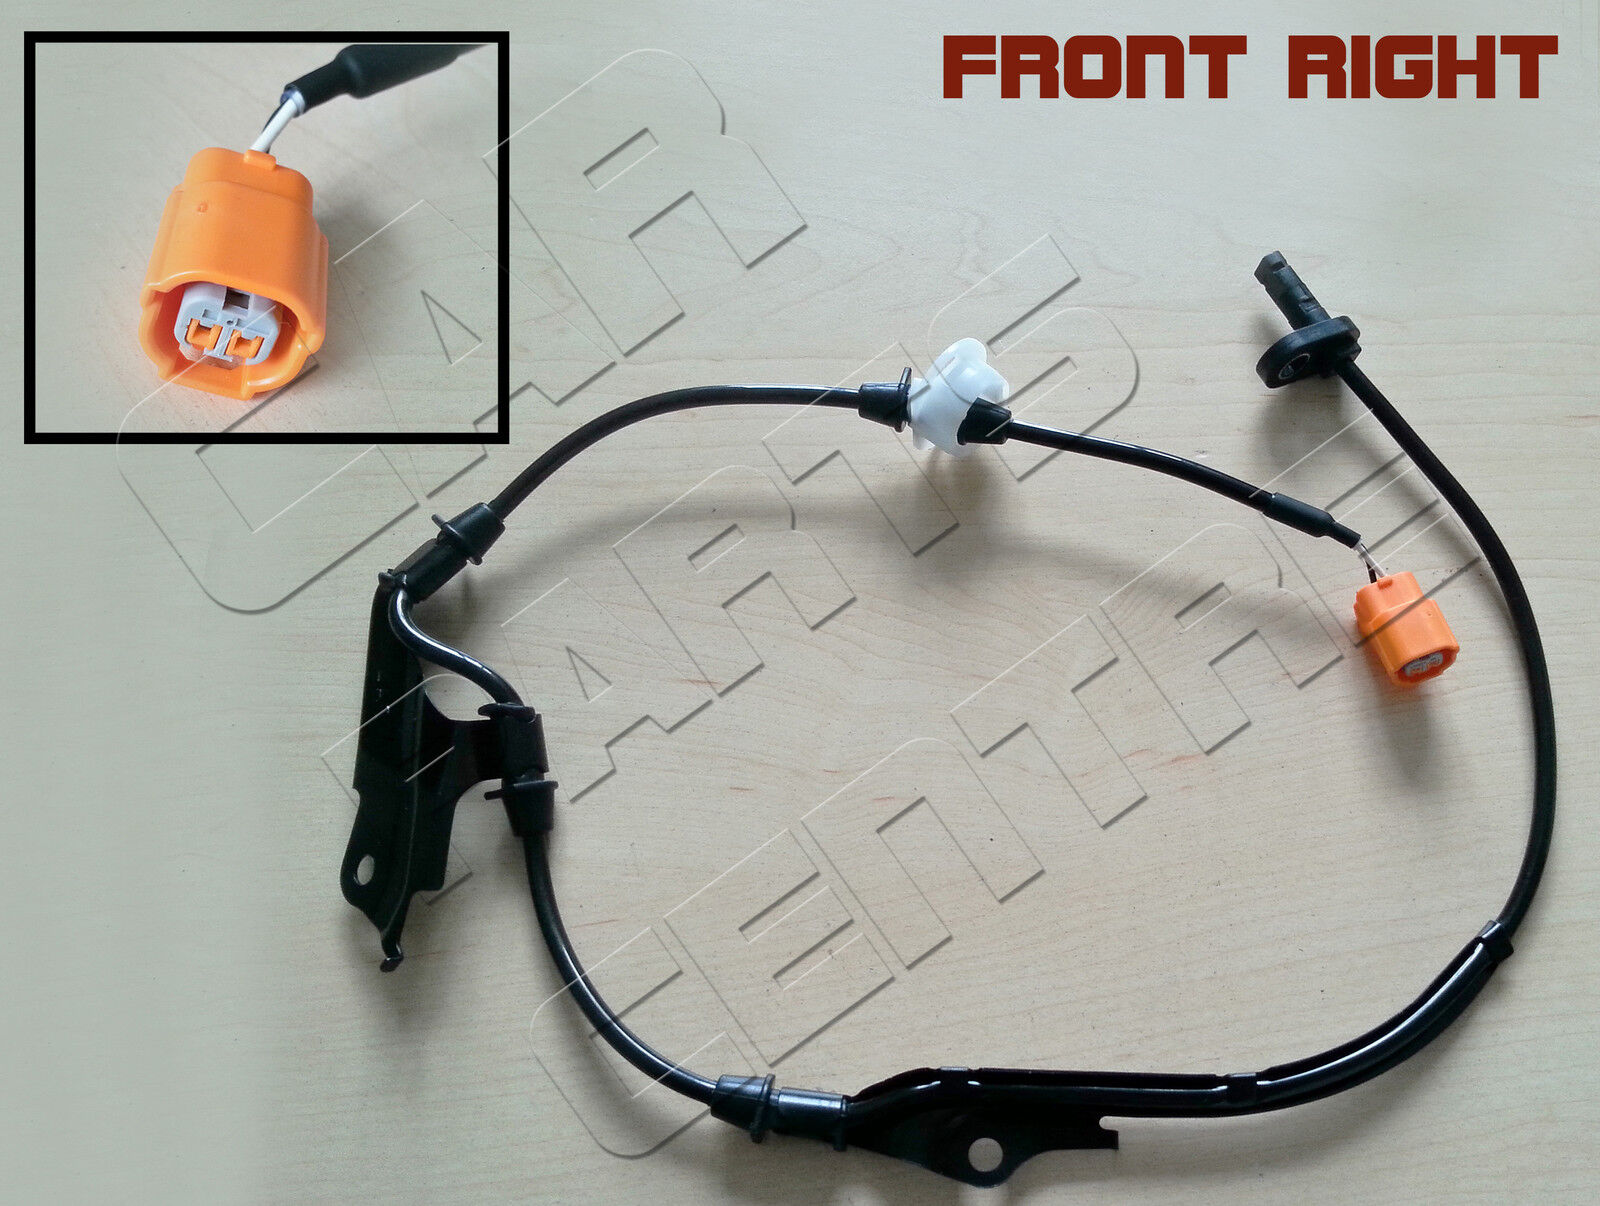 for HONDA ACCORD ABS SENSOR FRONT RIGHT 2003-2008 57450-SDC-013 SALOON ESTATE